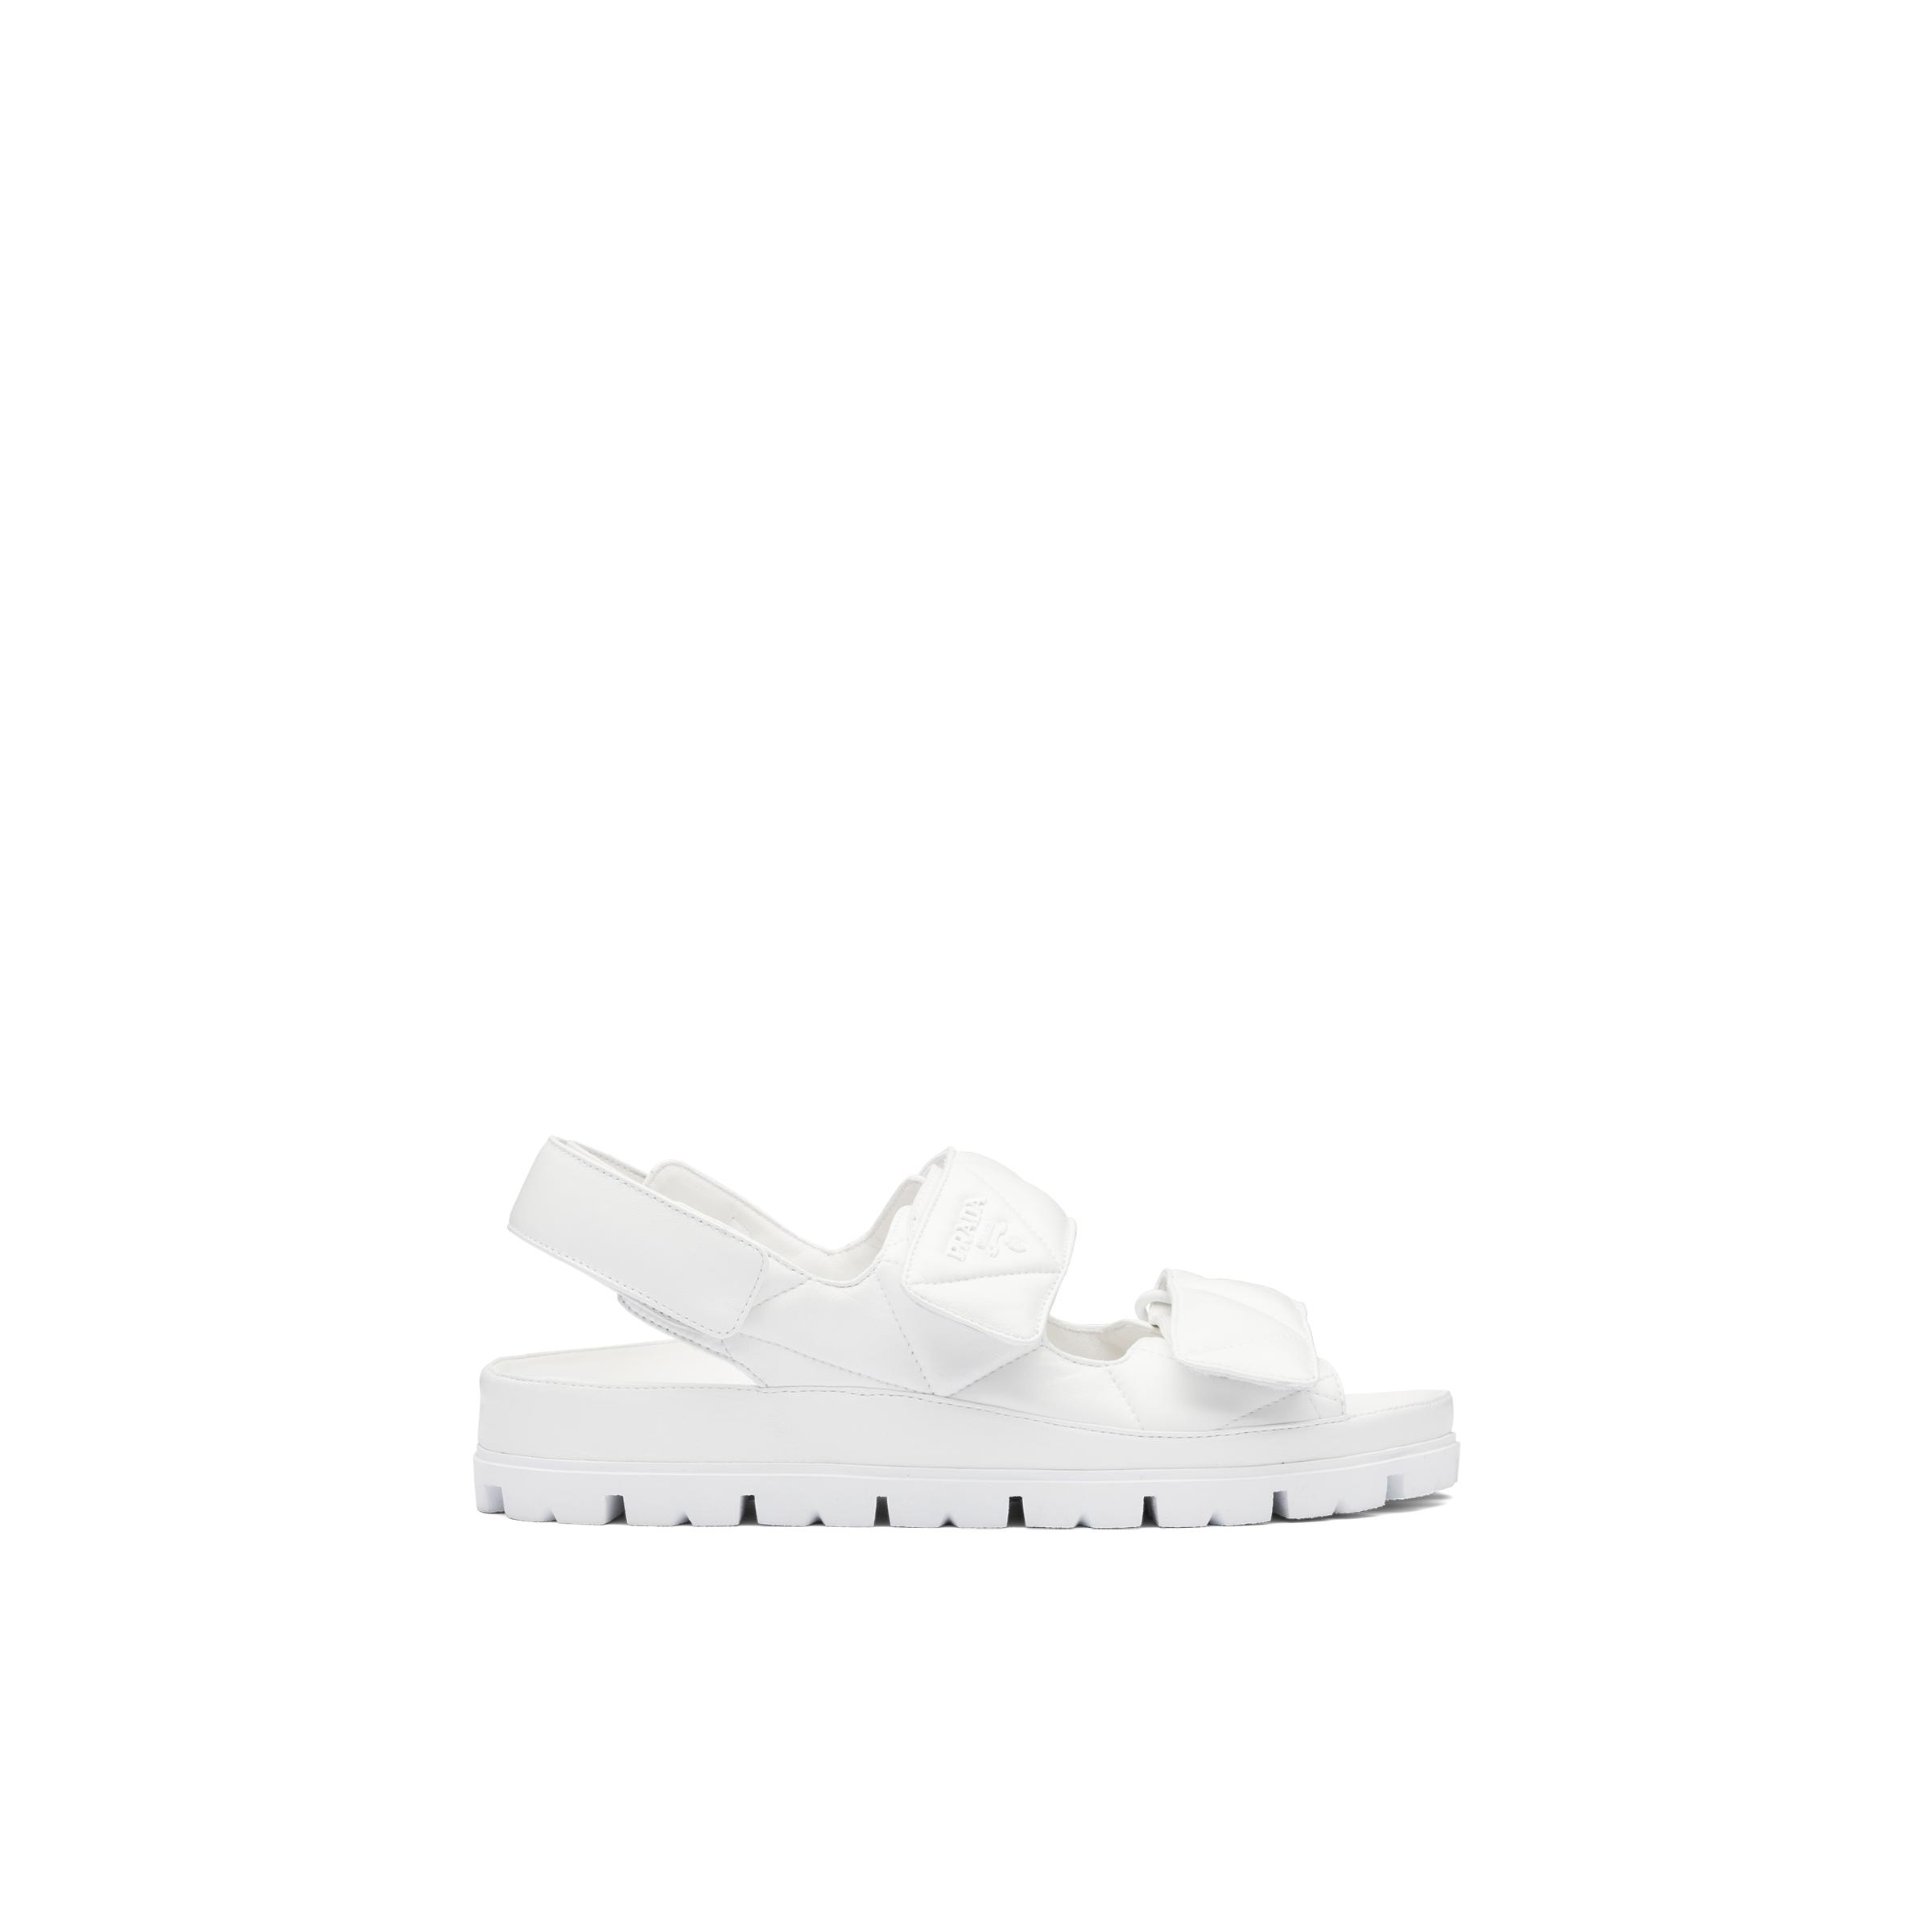 Padded Nappa Leather Sandals Women White 2